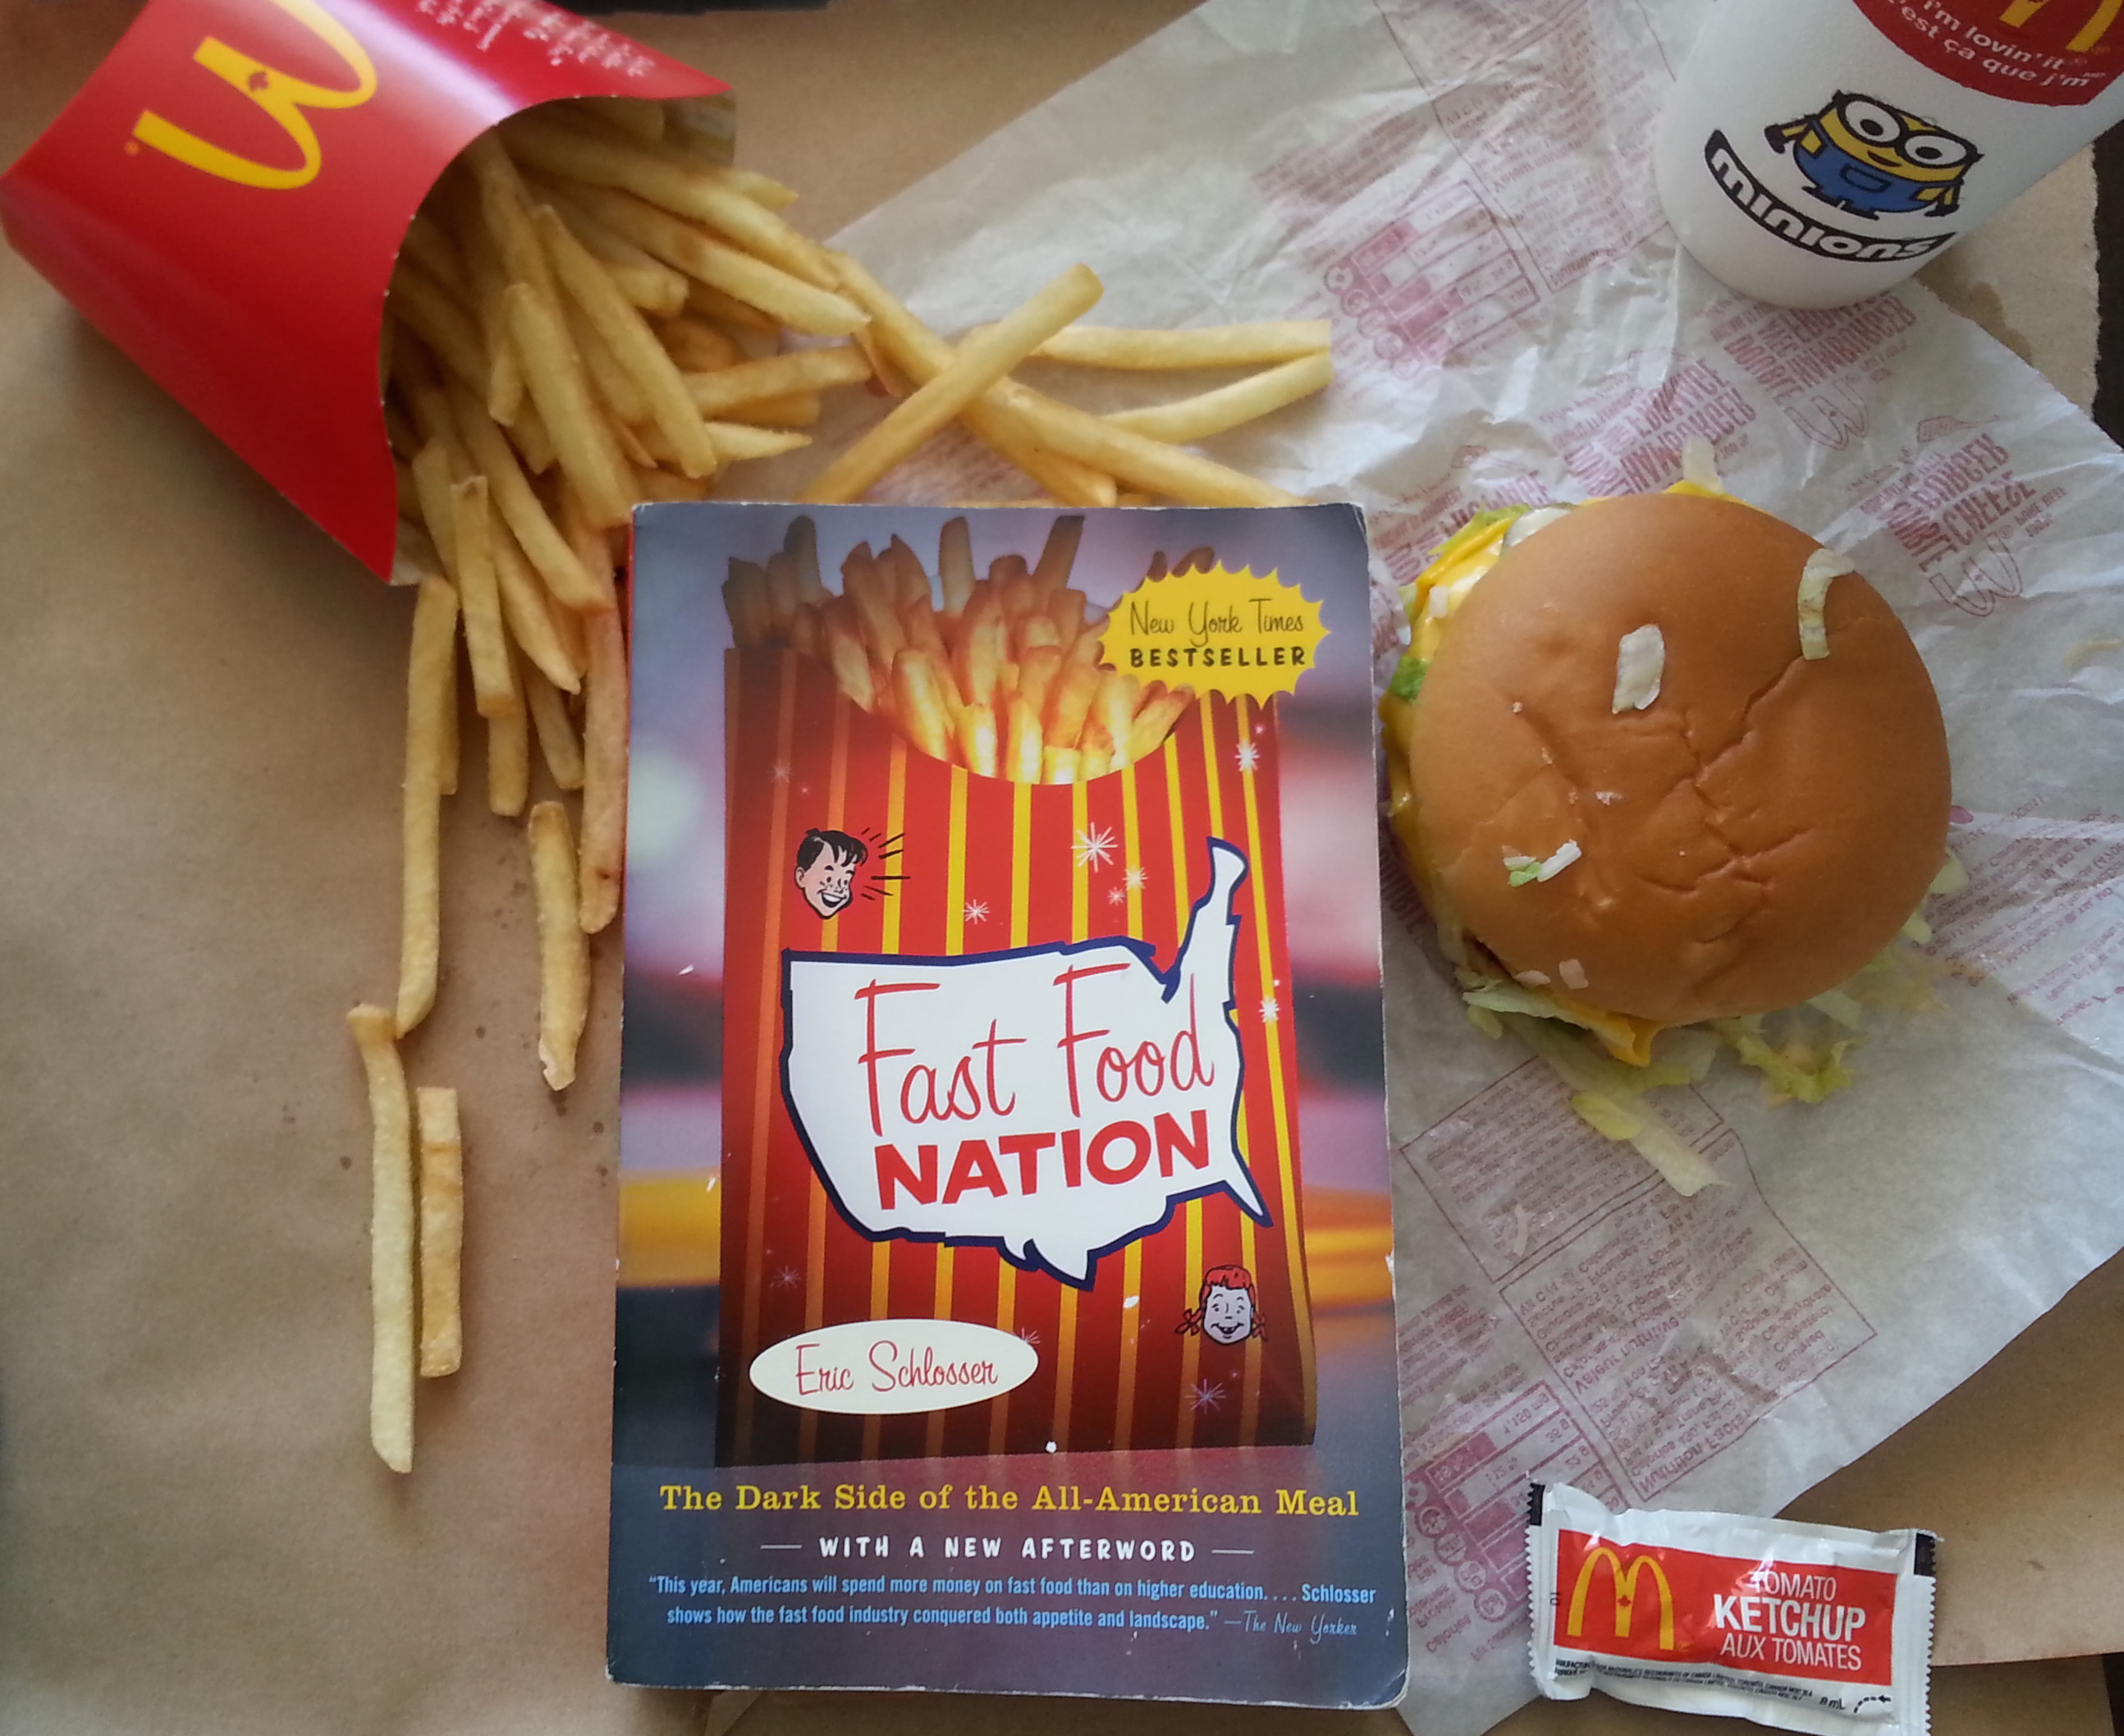 fast food nation by eric schlosser essays Fast food nation essays are academic essays for citation these papers were written primarily by students and provide critical analysis of fast food nation by eric schlosser unhealthy america: critiquing the fast food nation.